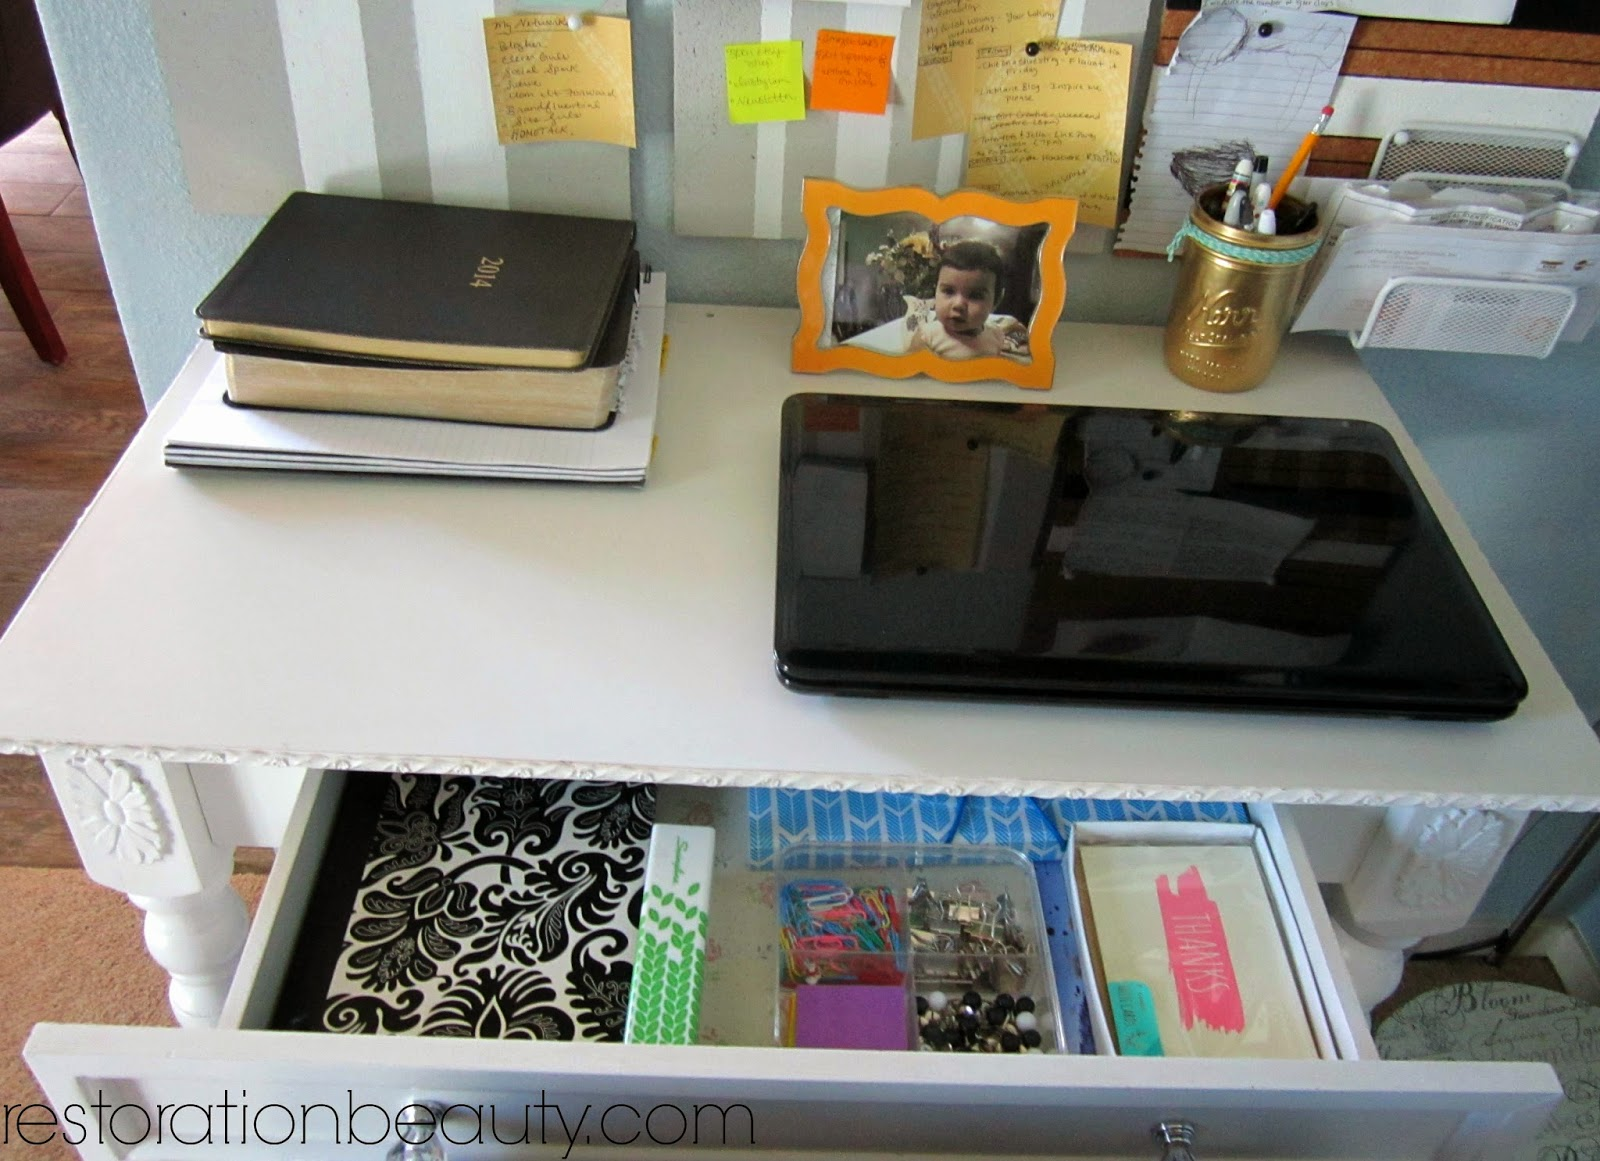 Organizing Office Space. Restoration Beauty: How To Organize A Small Office/work  Space